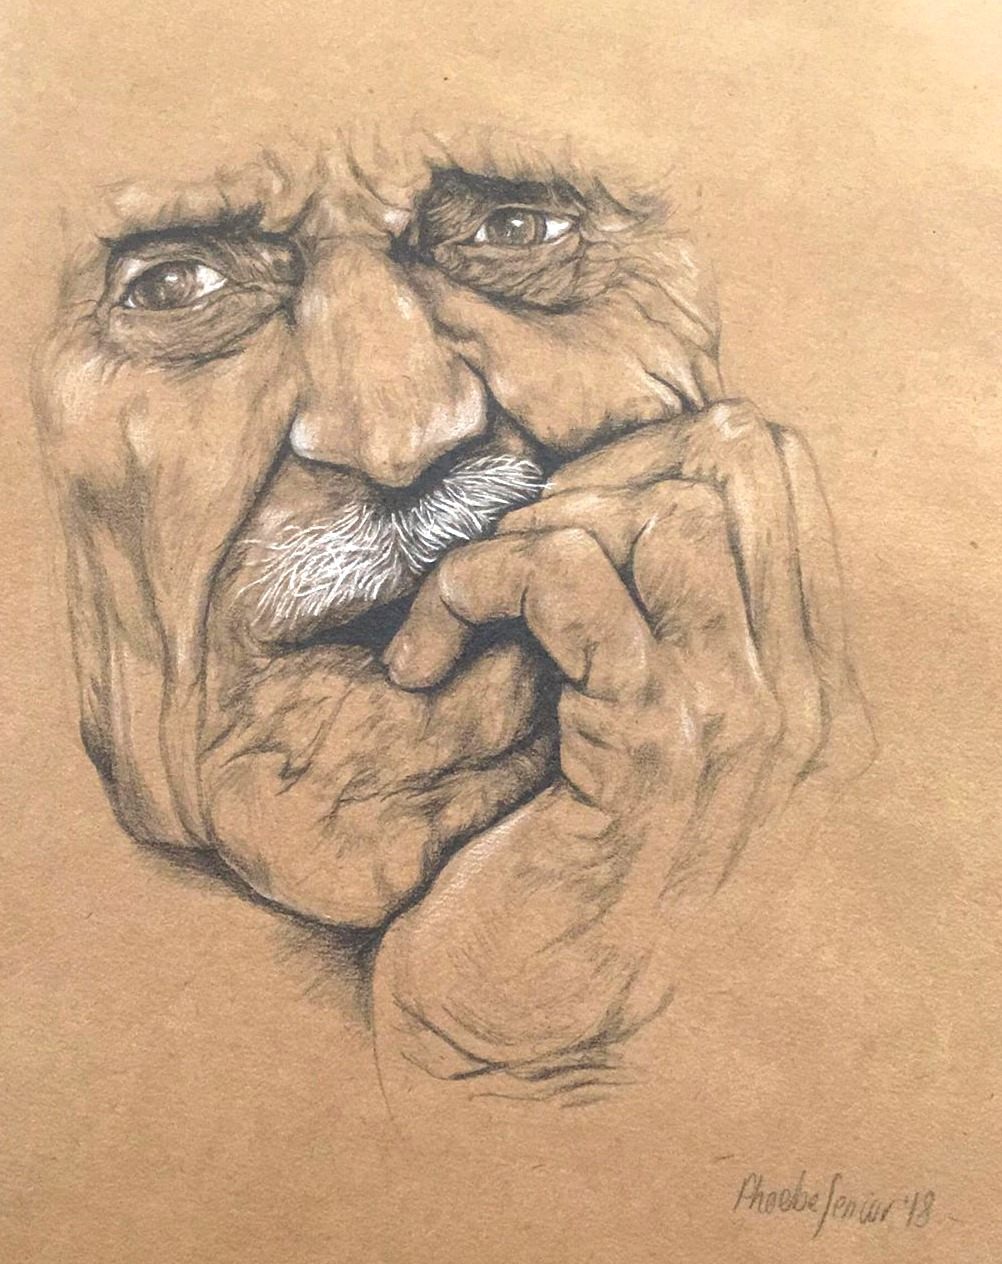 Old Man face- commission